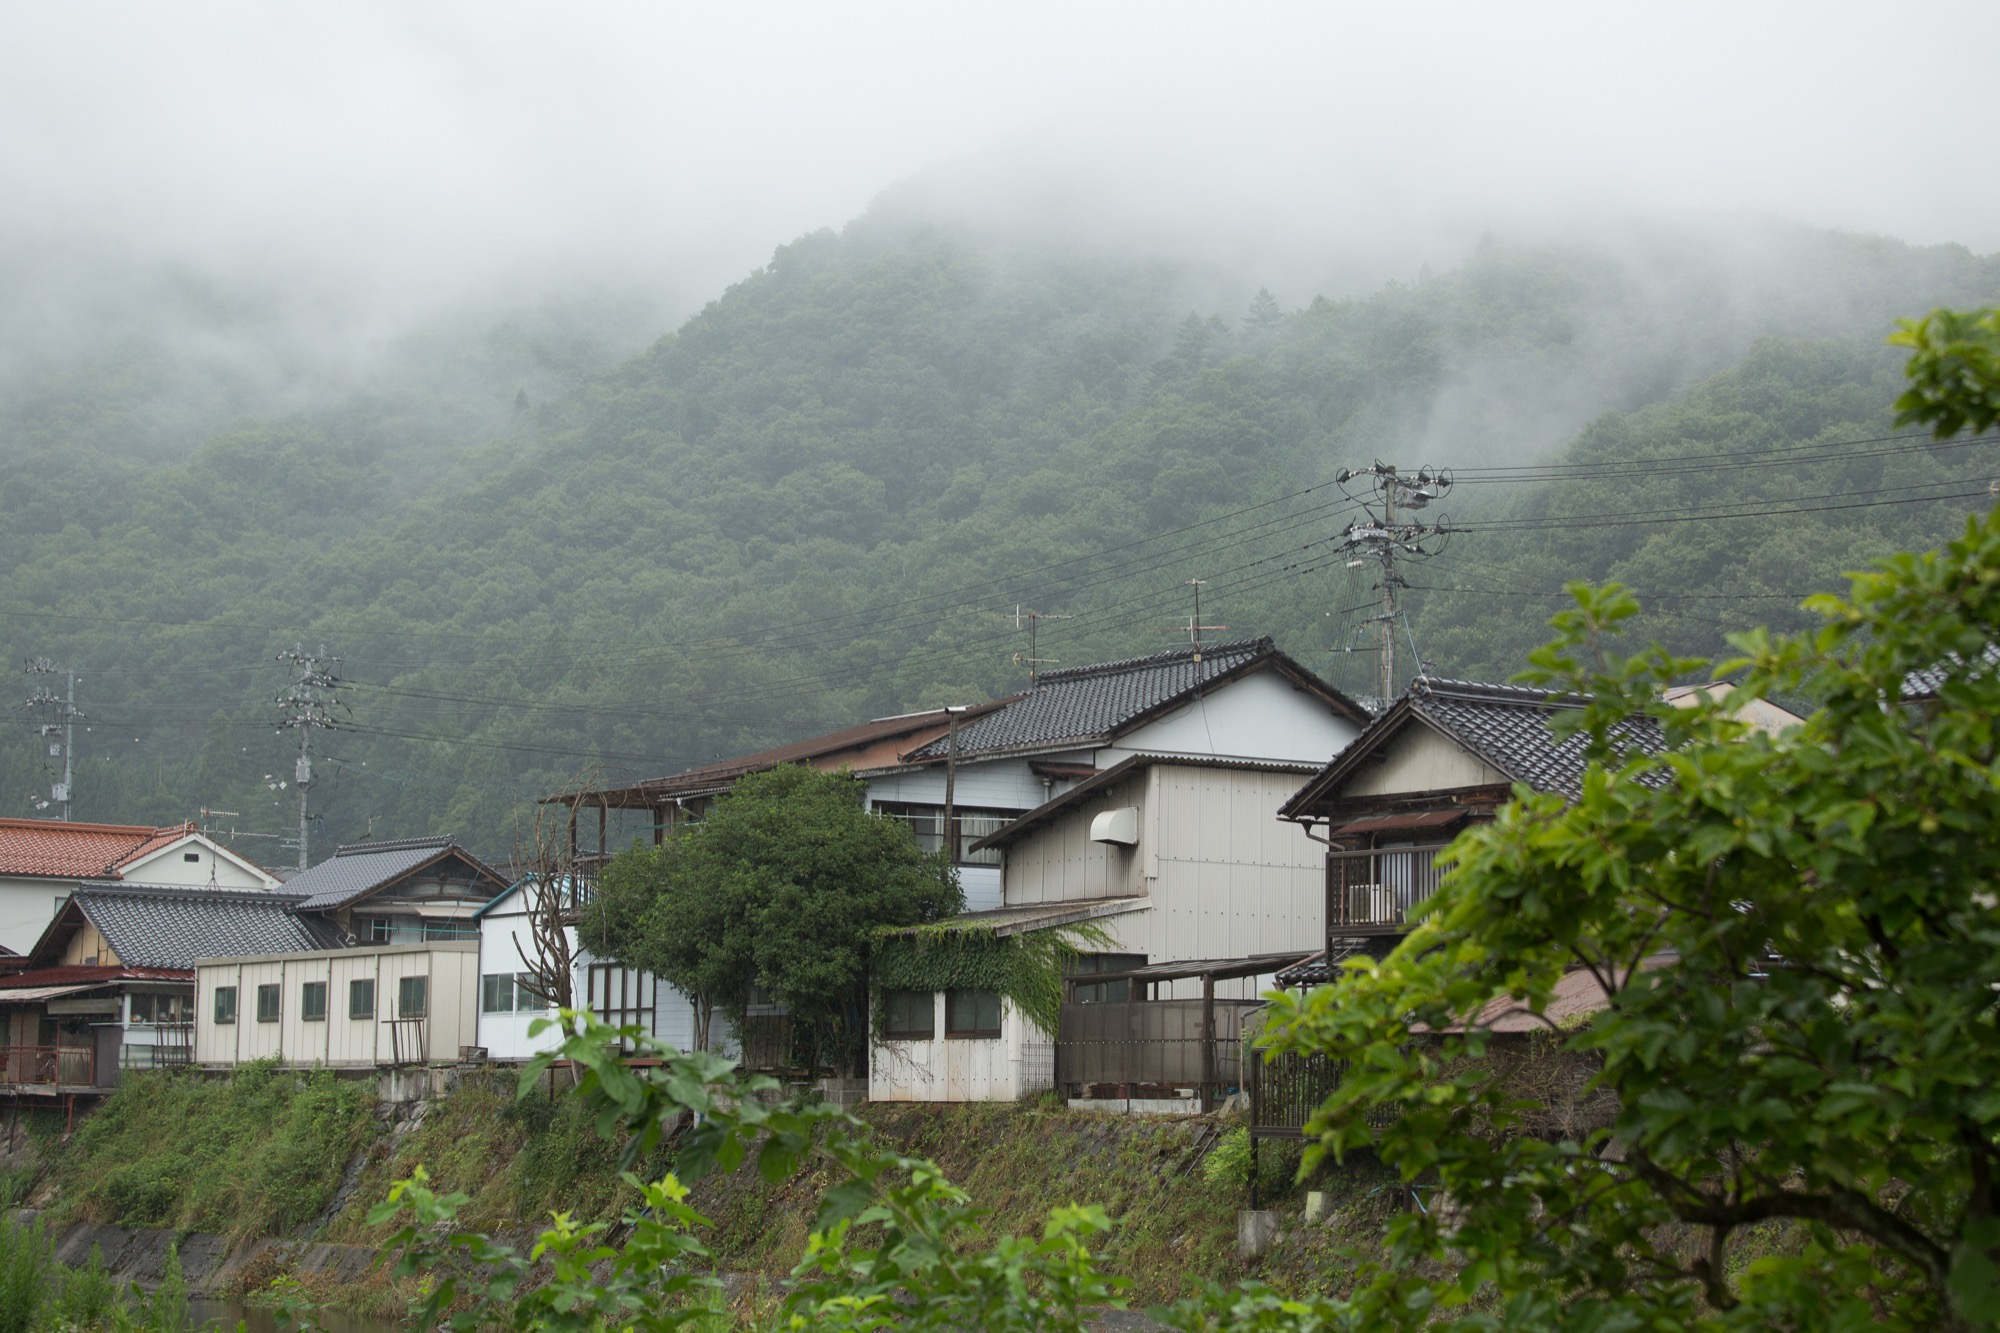 Niima, where Takeda's workshop is located / Photo by Max Hodges